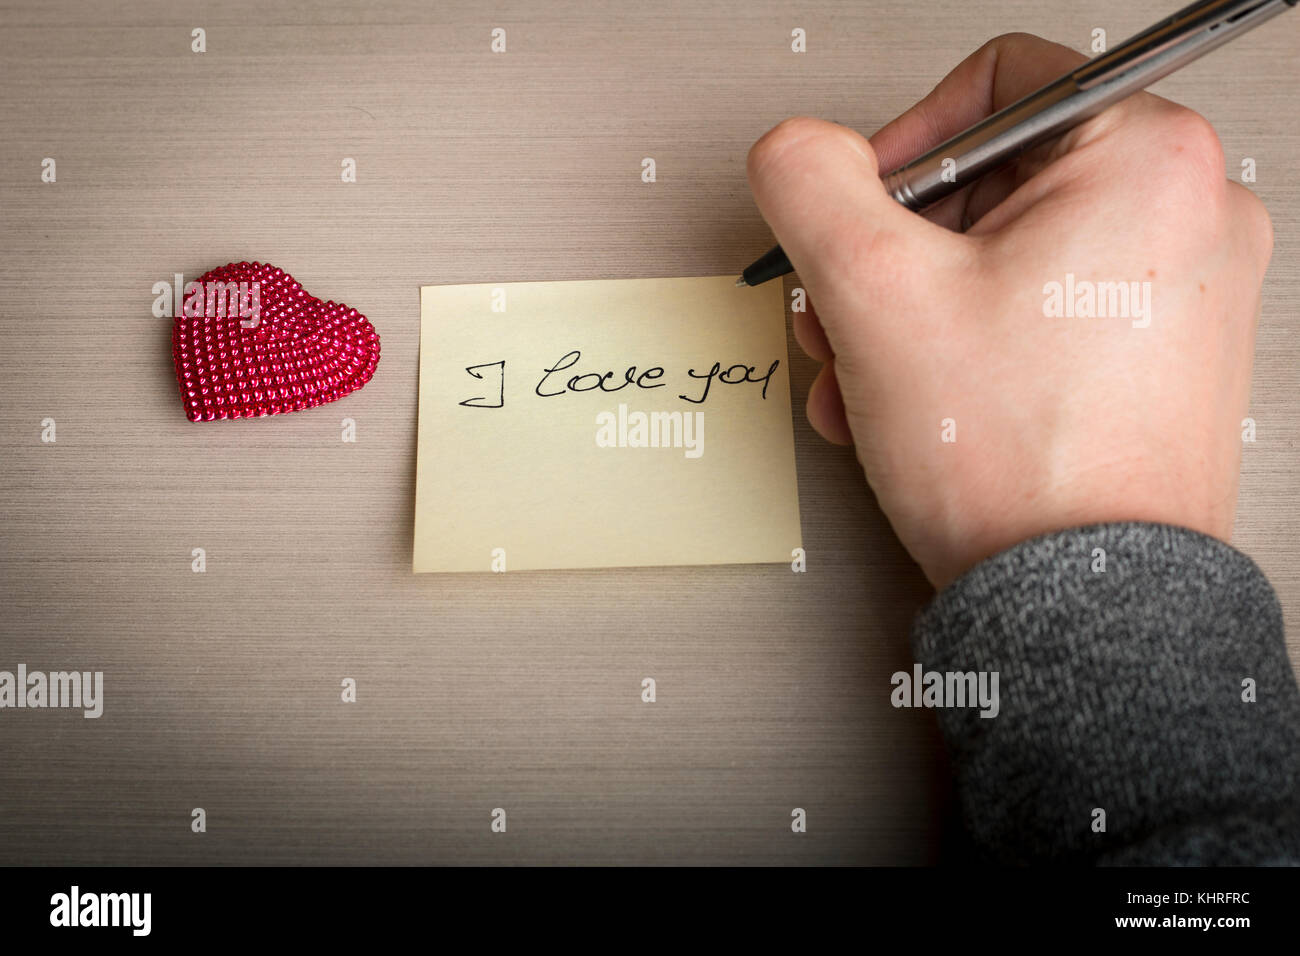 Man's hand writing I love you on sticky-note with little heart shaped figure beside - Stock Image